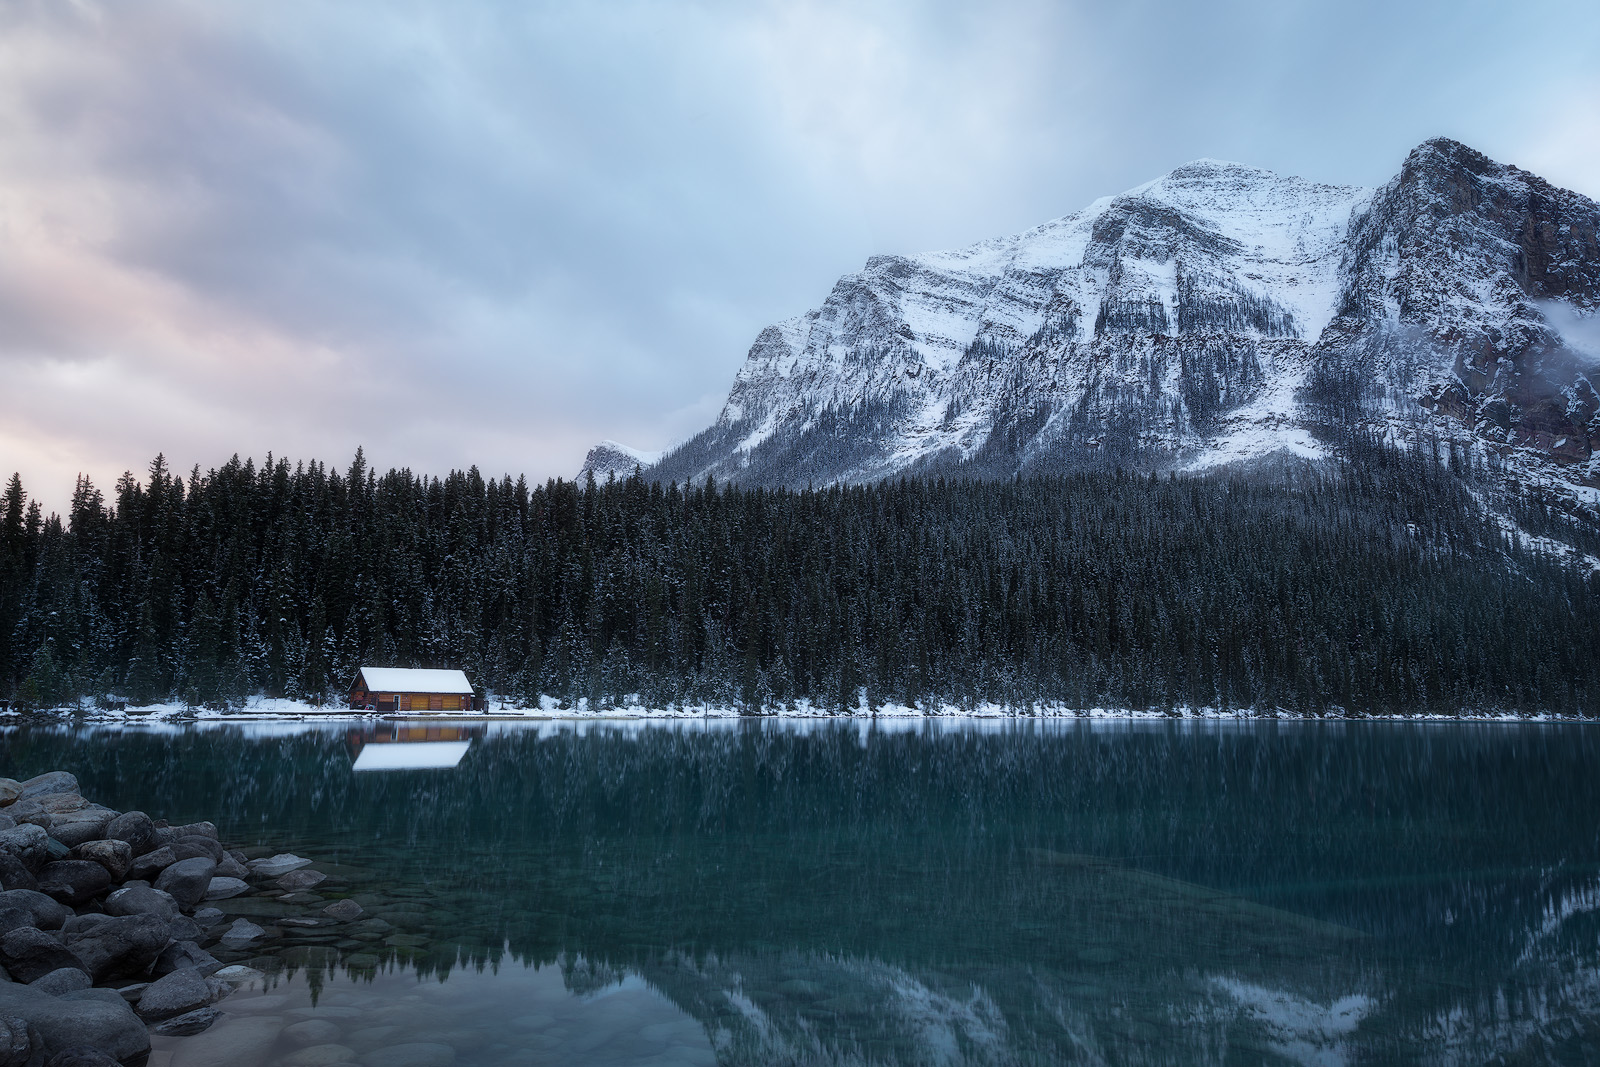 alberta,banff,beautiful,blue,canada,classic,cloudy,lake,lake louise,landscape,larch,morning,mountain,mountain range,north america,peak,reflection,snow,trees,turquoise,water body, photo